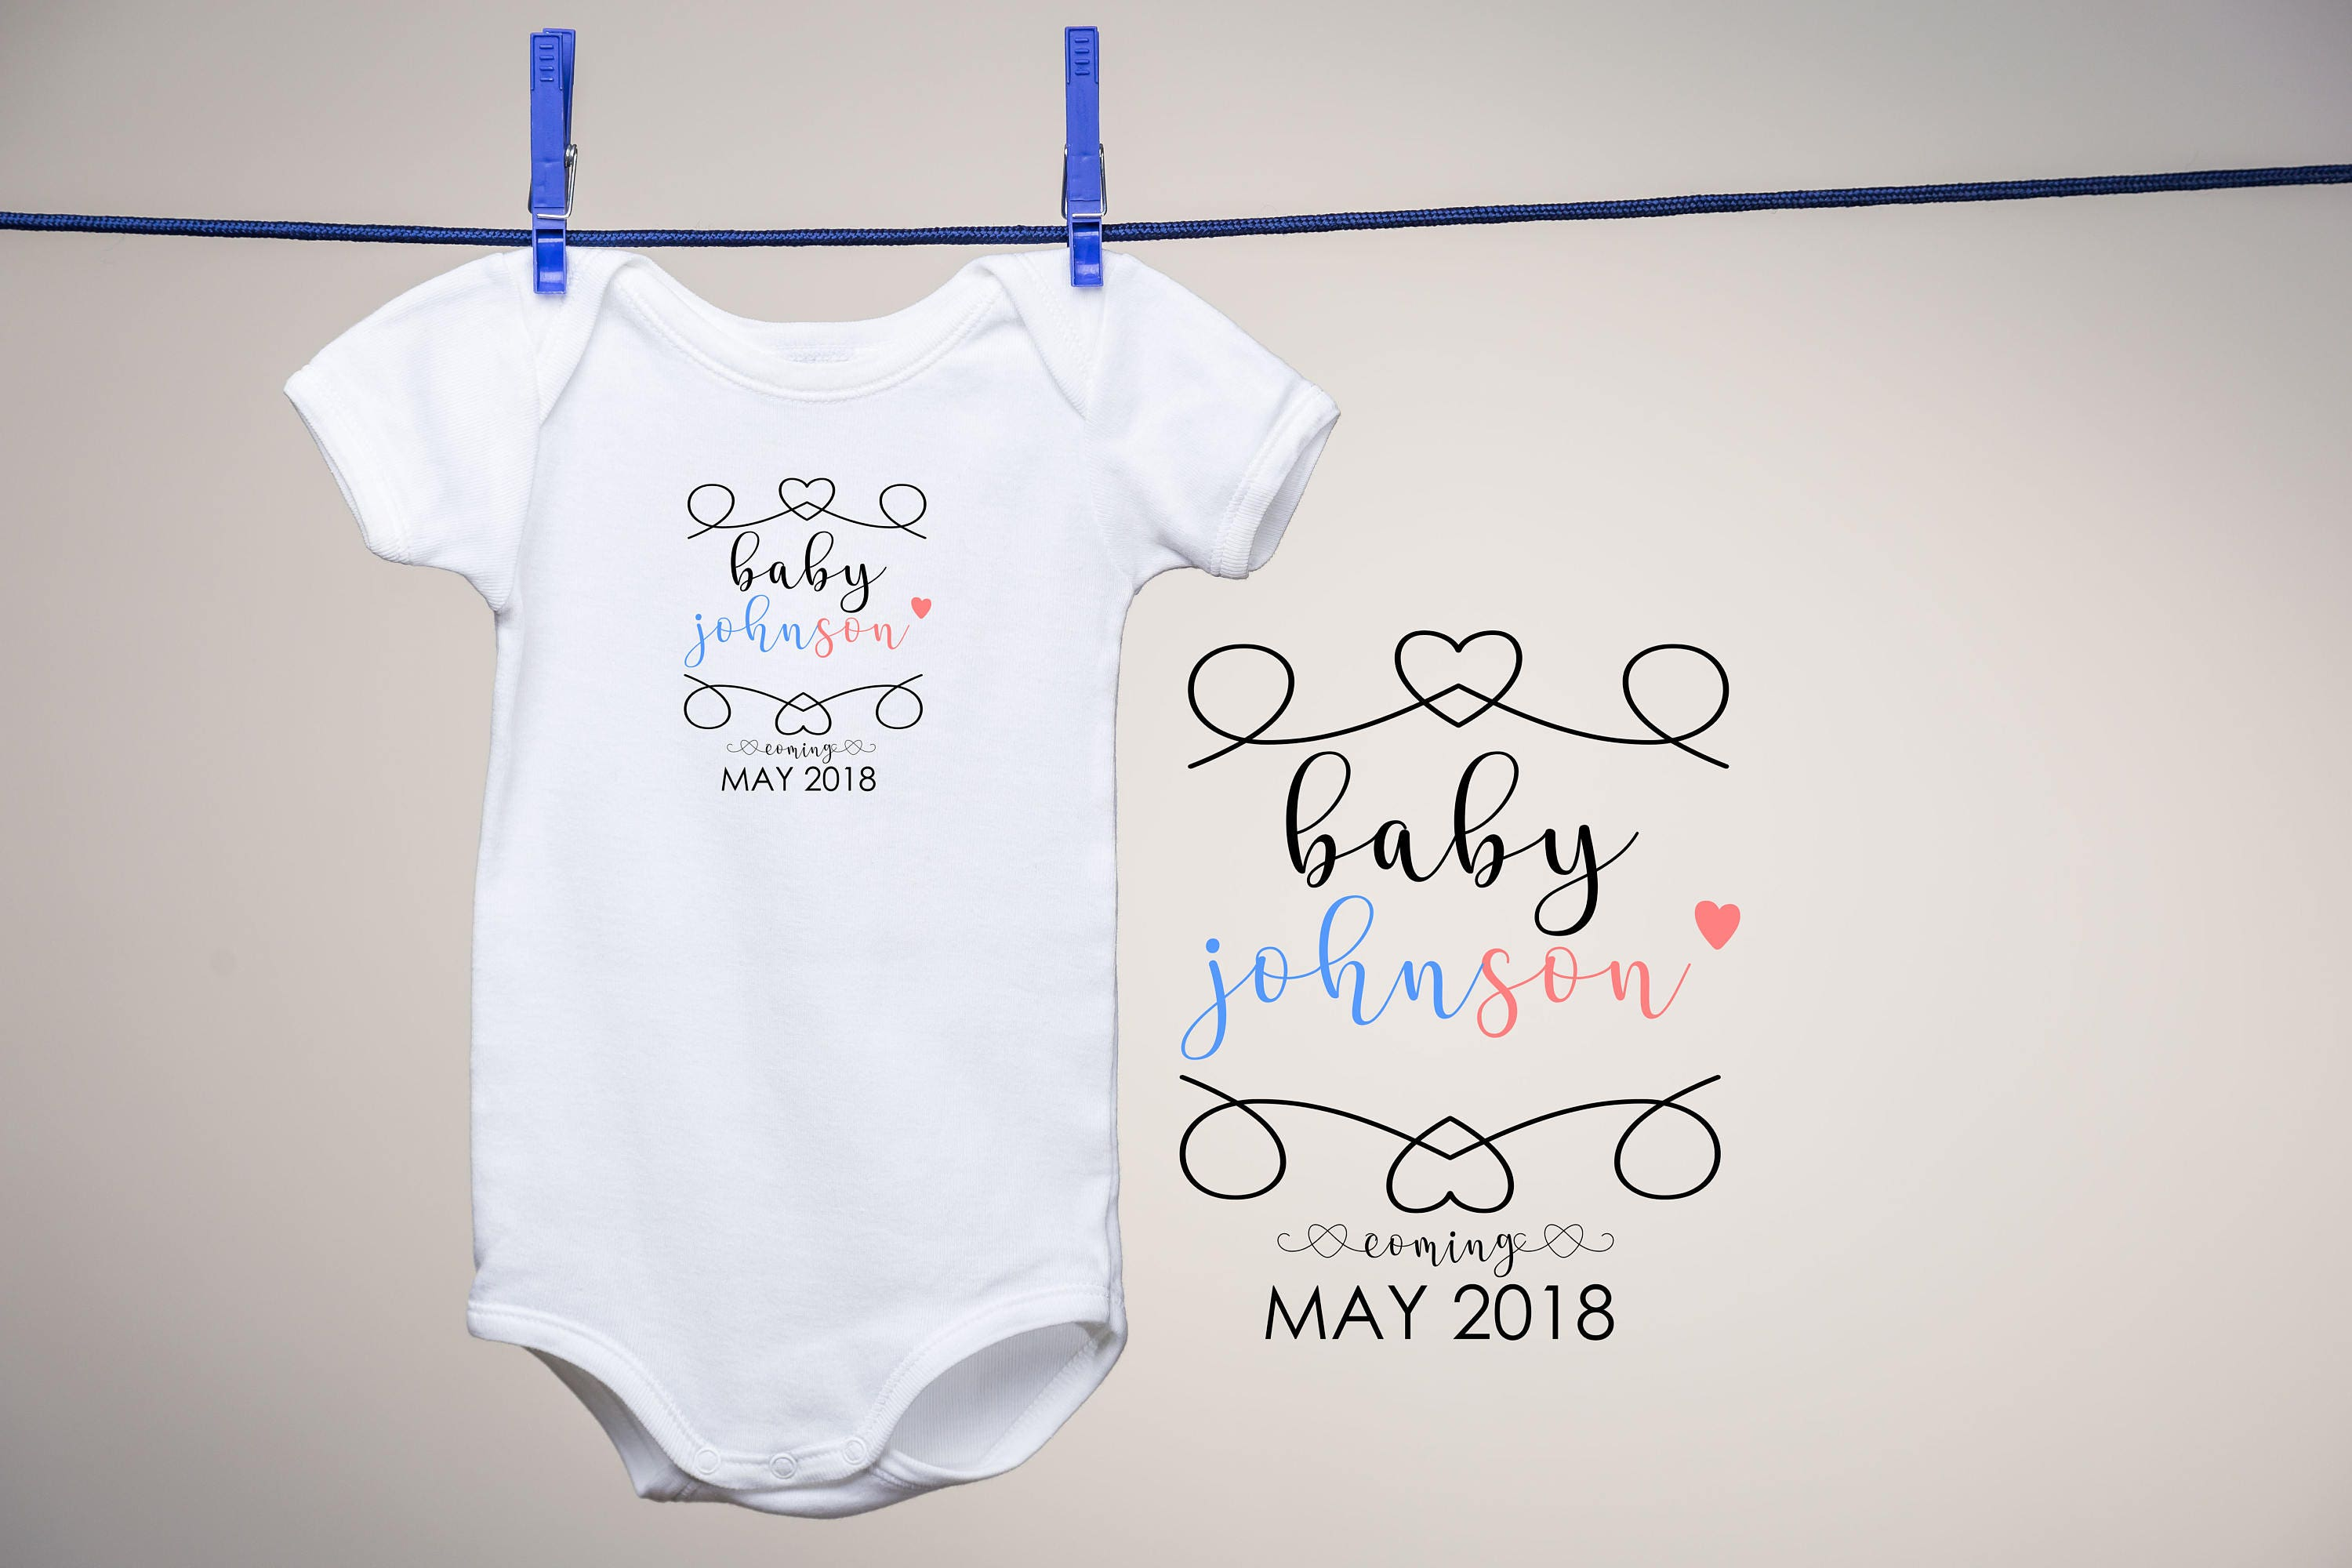 Baby Boys Clothing Boys Clothing Clothing – Coming Soon Baby Announcements